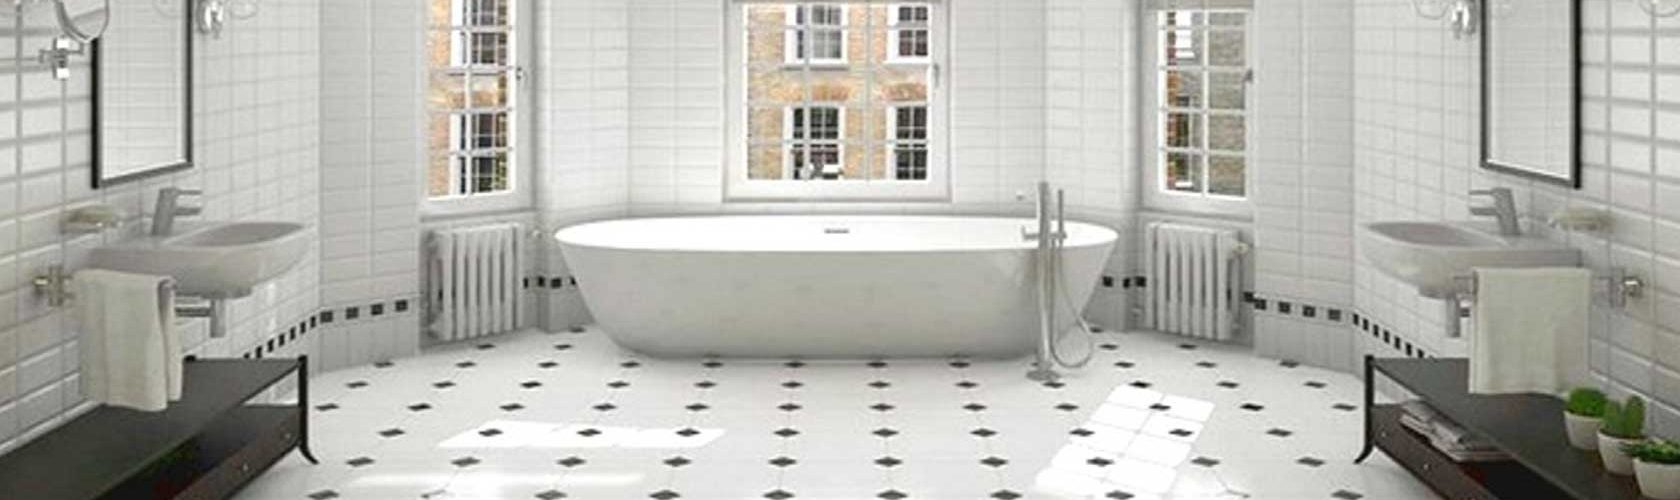 Elevate The Aesthetics Of Your Bathroom With Charming Bathroom Tiles